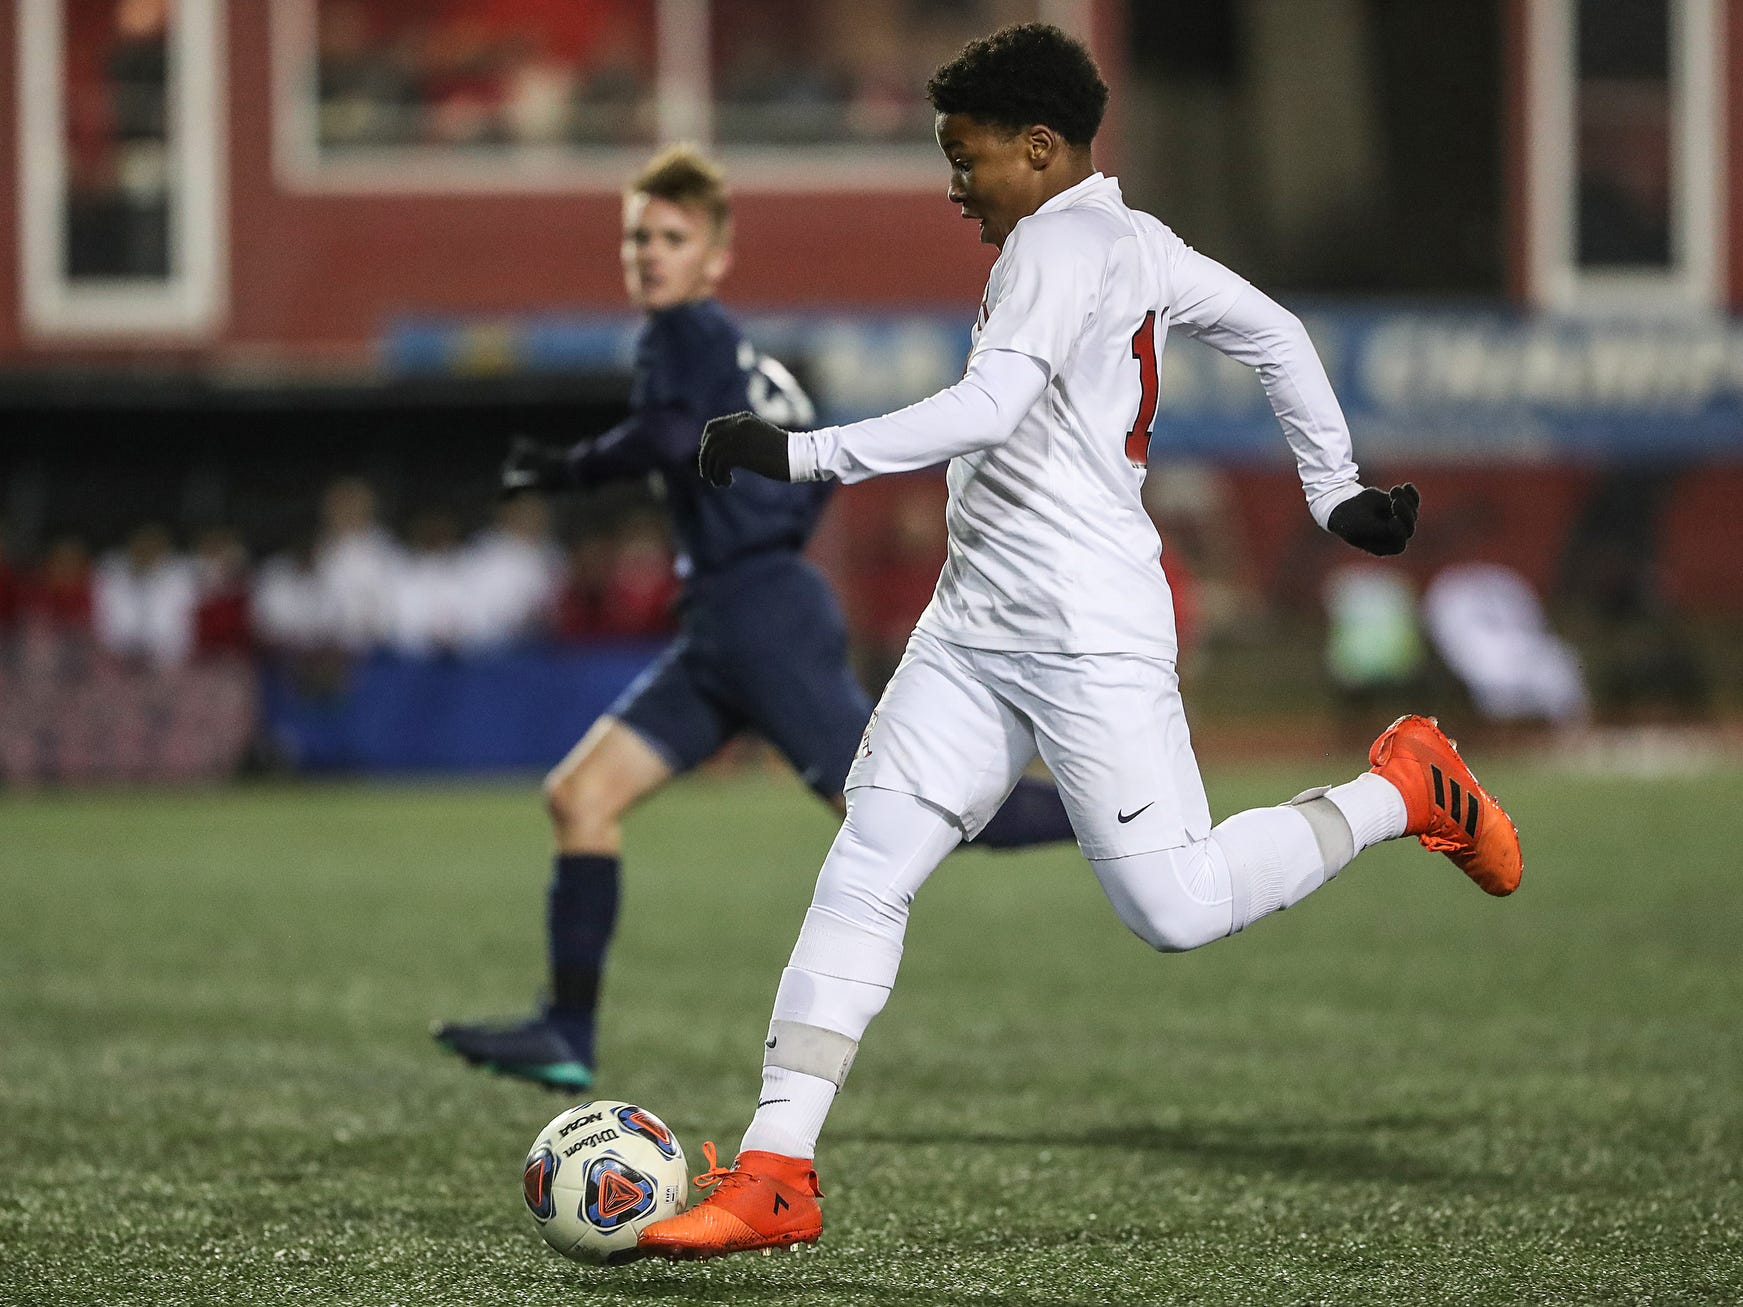 Cardinal Ritter Raiders midfielder Chris Murray (14) moves the ball during the second half of IHSAA class 2A state finals at IUPUI's Michael A. Carroll Stadium in Indianapolis, Friday, Oct. 26, 2018. Hammond Bishop Noll defeated Cardinal Ritter, 1-0.